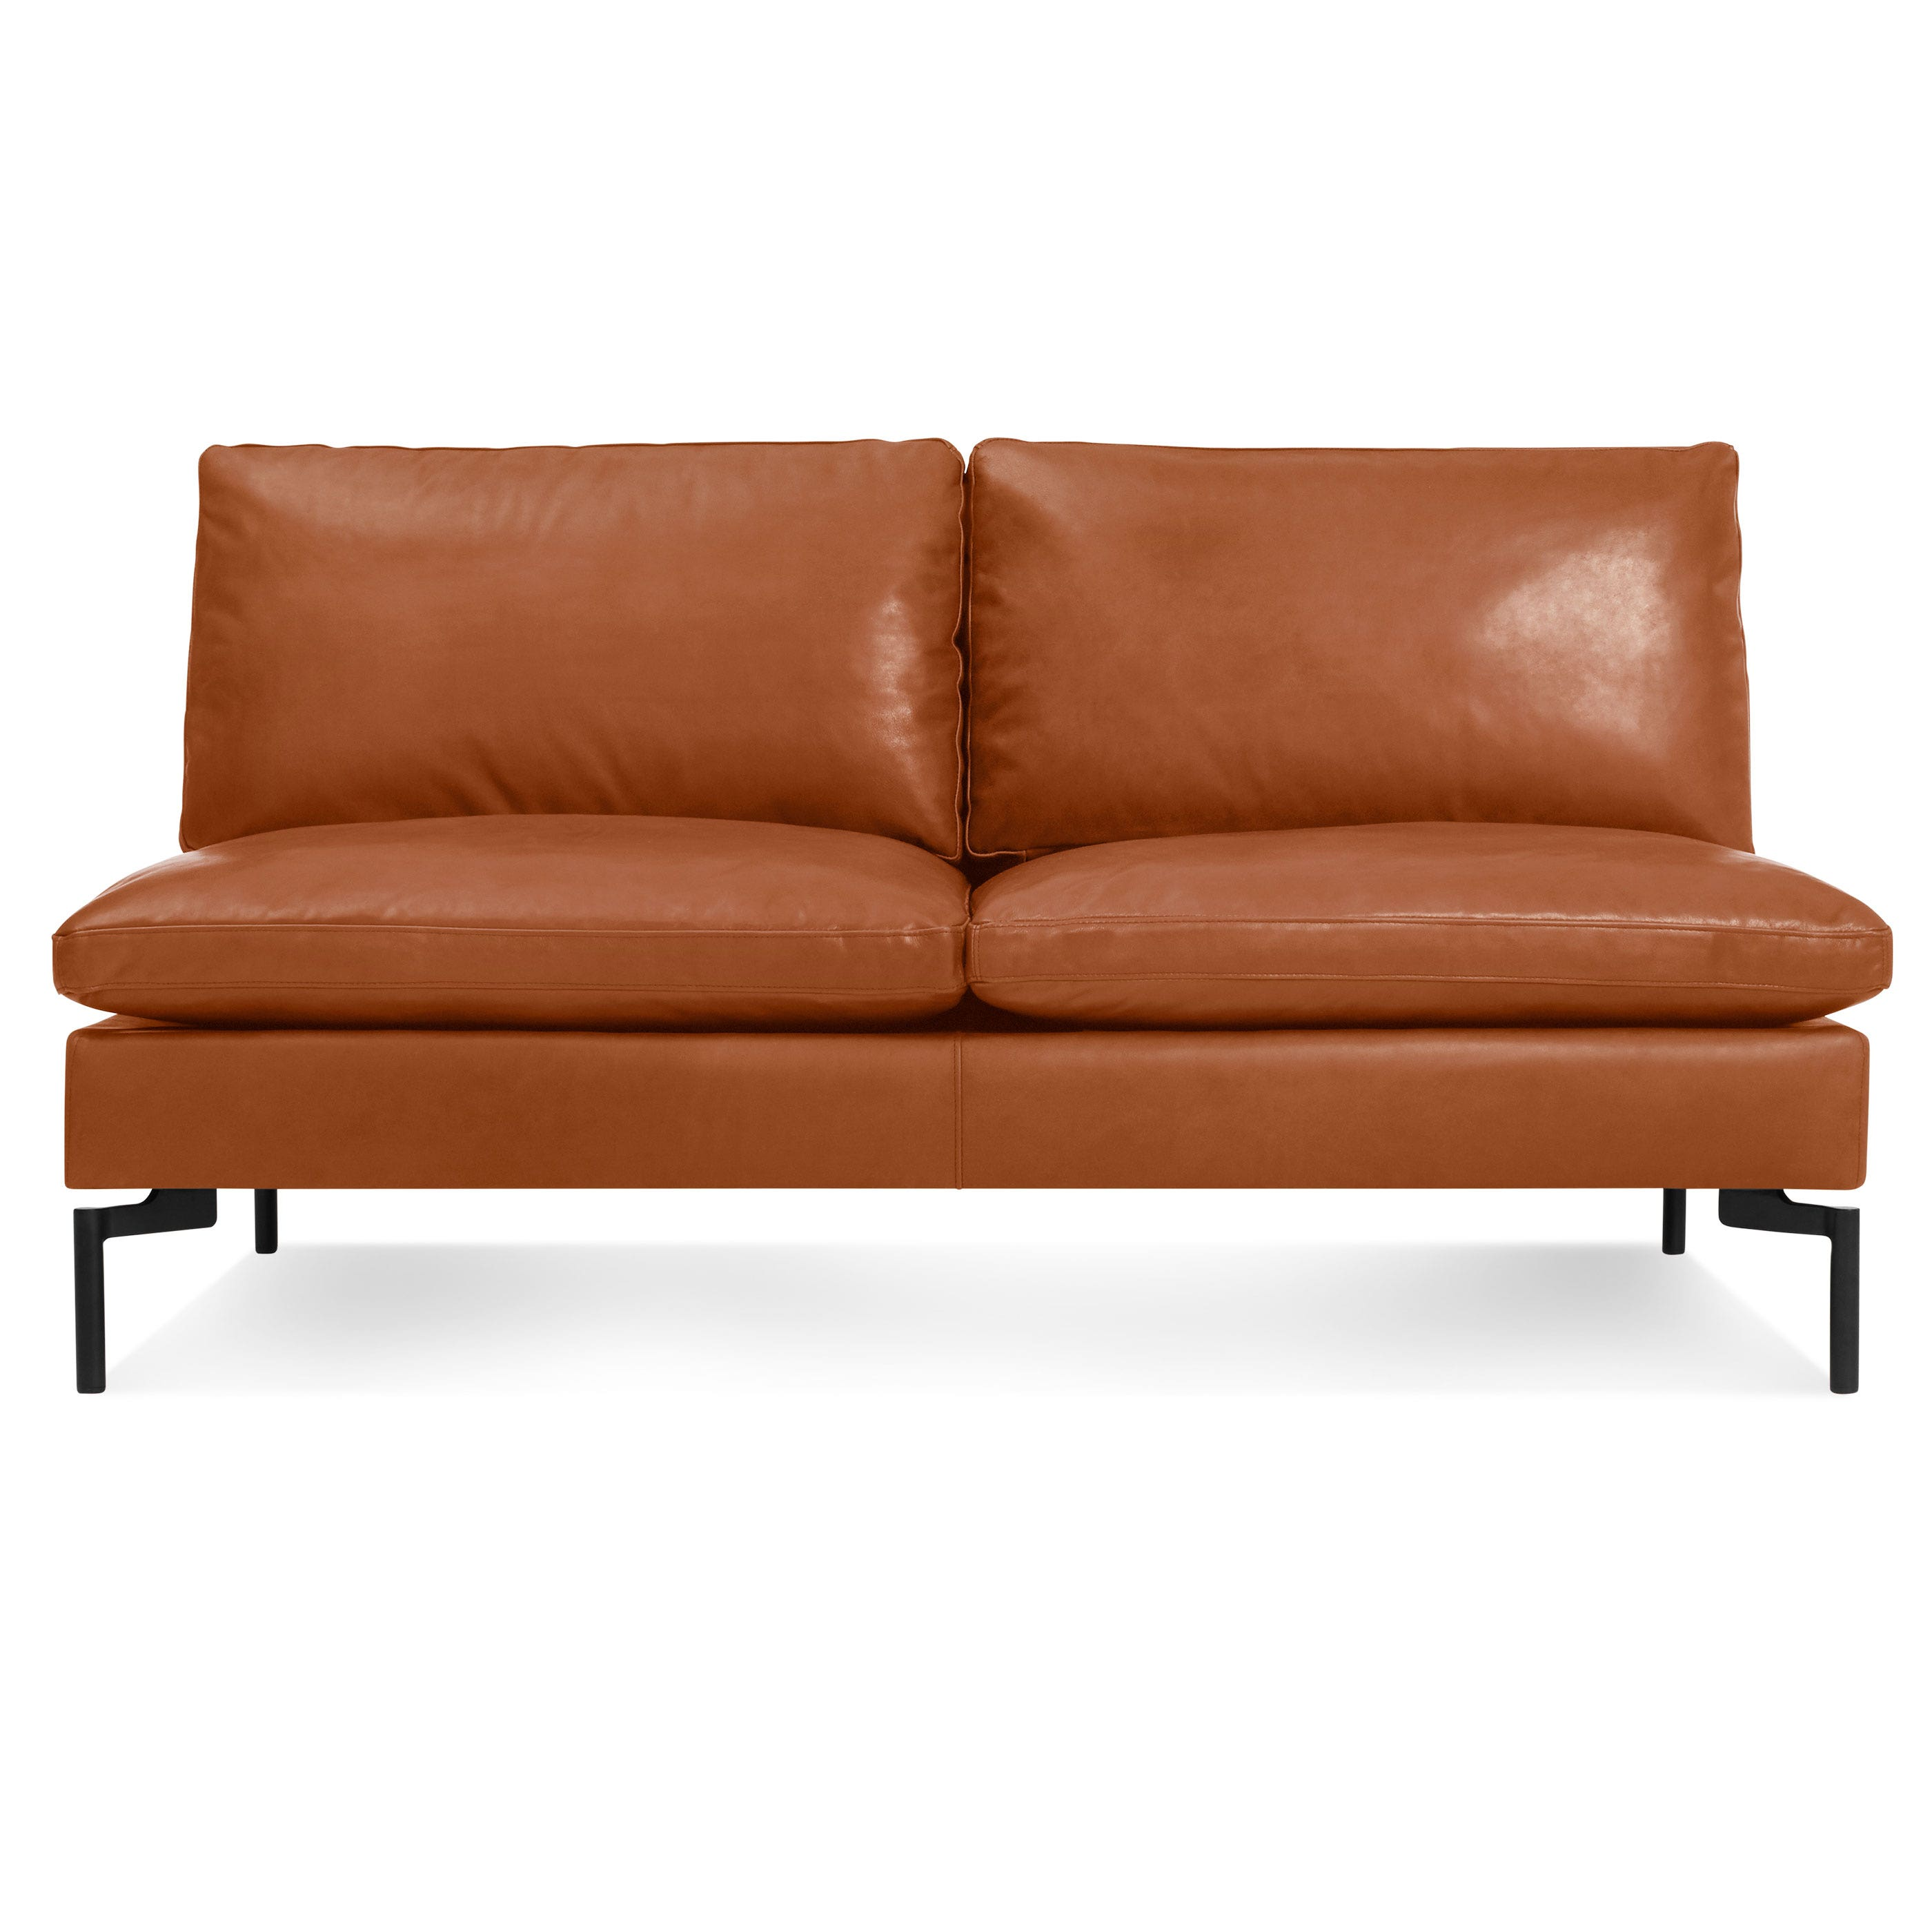 New Standard Armless Leather Sofa Modern Sofas And Sectionals Bludot